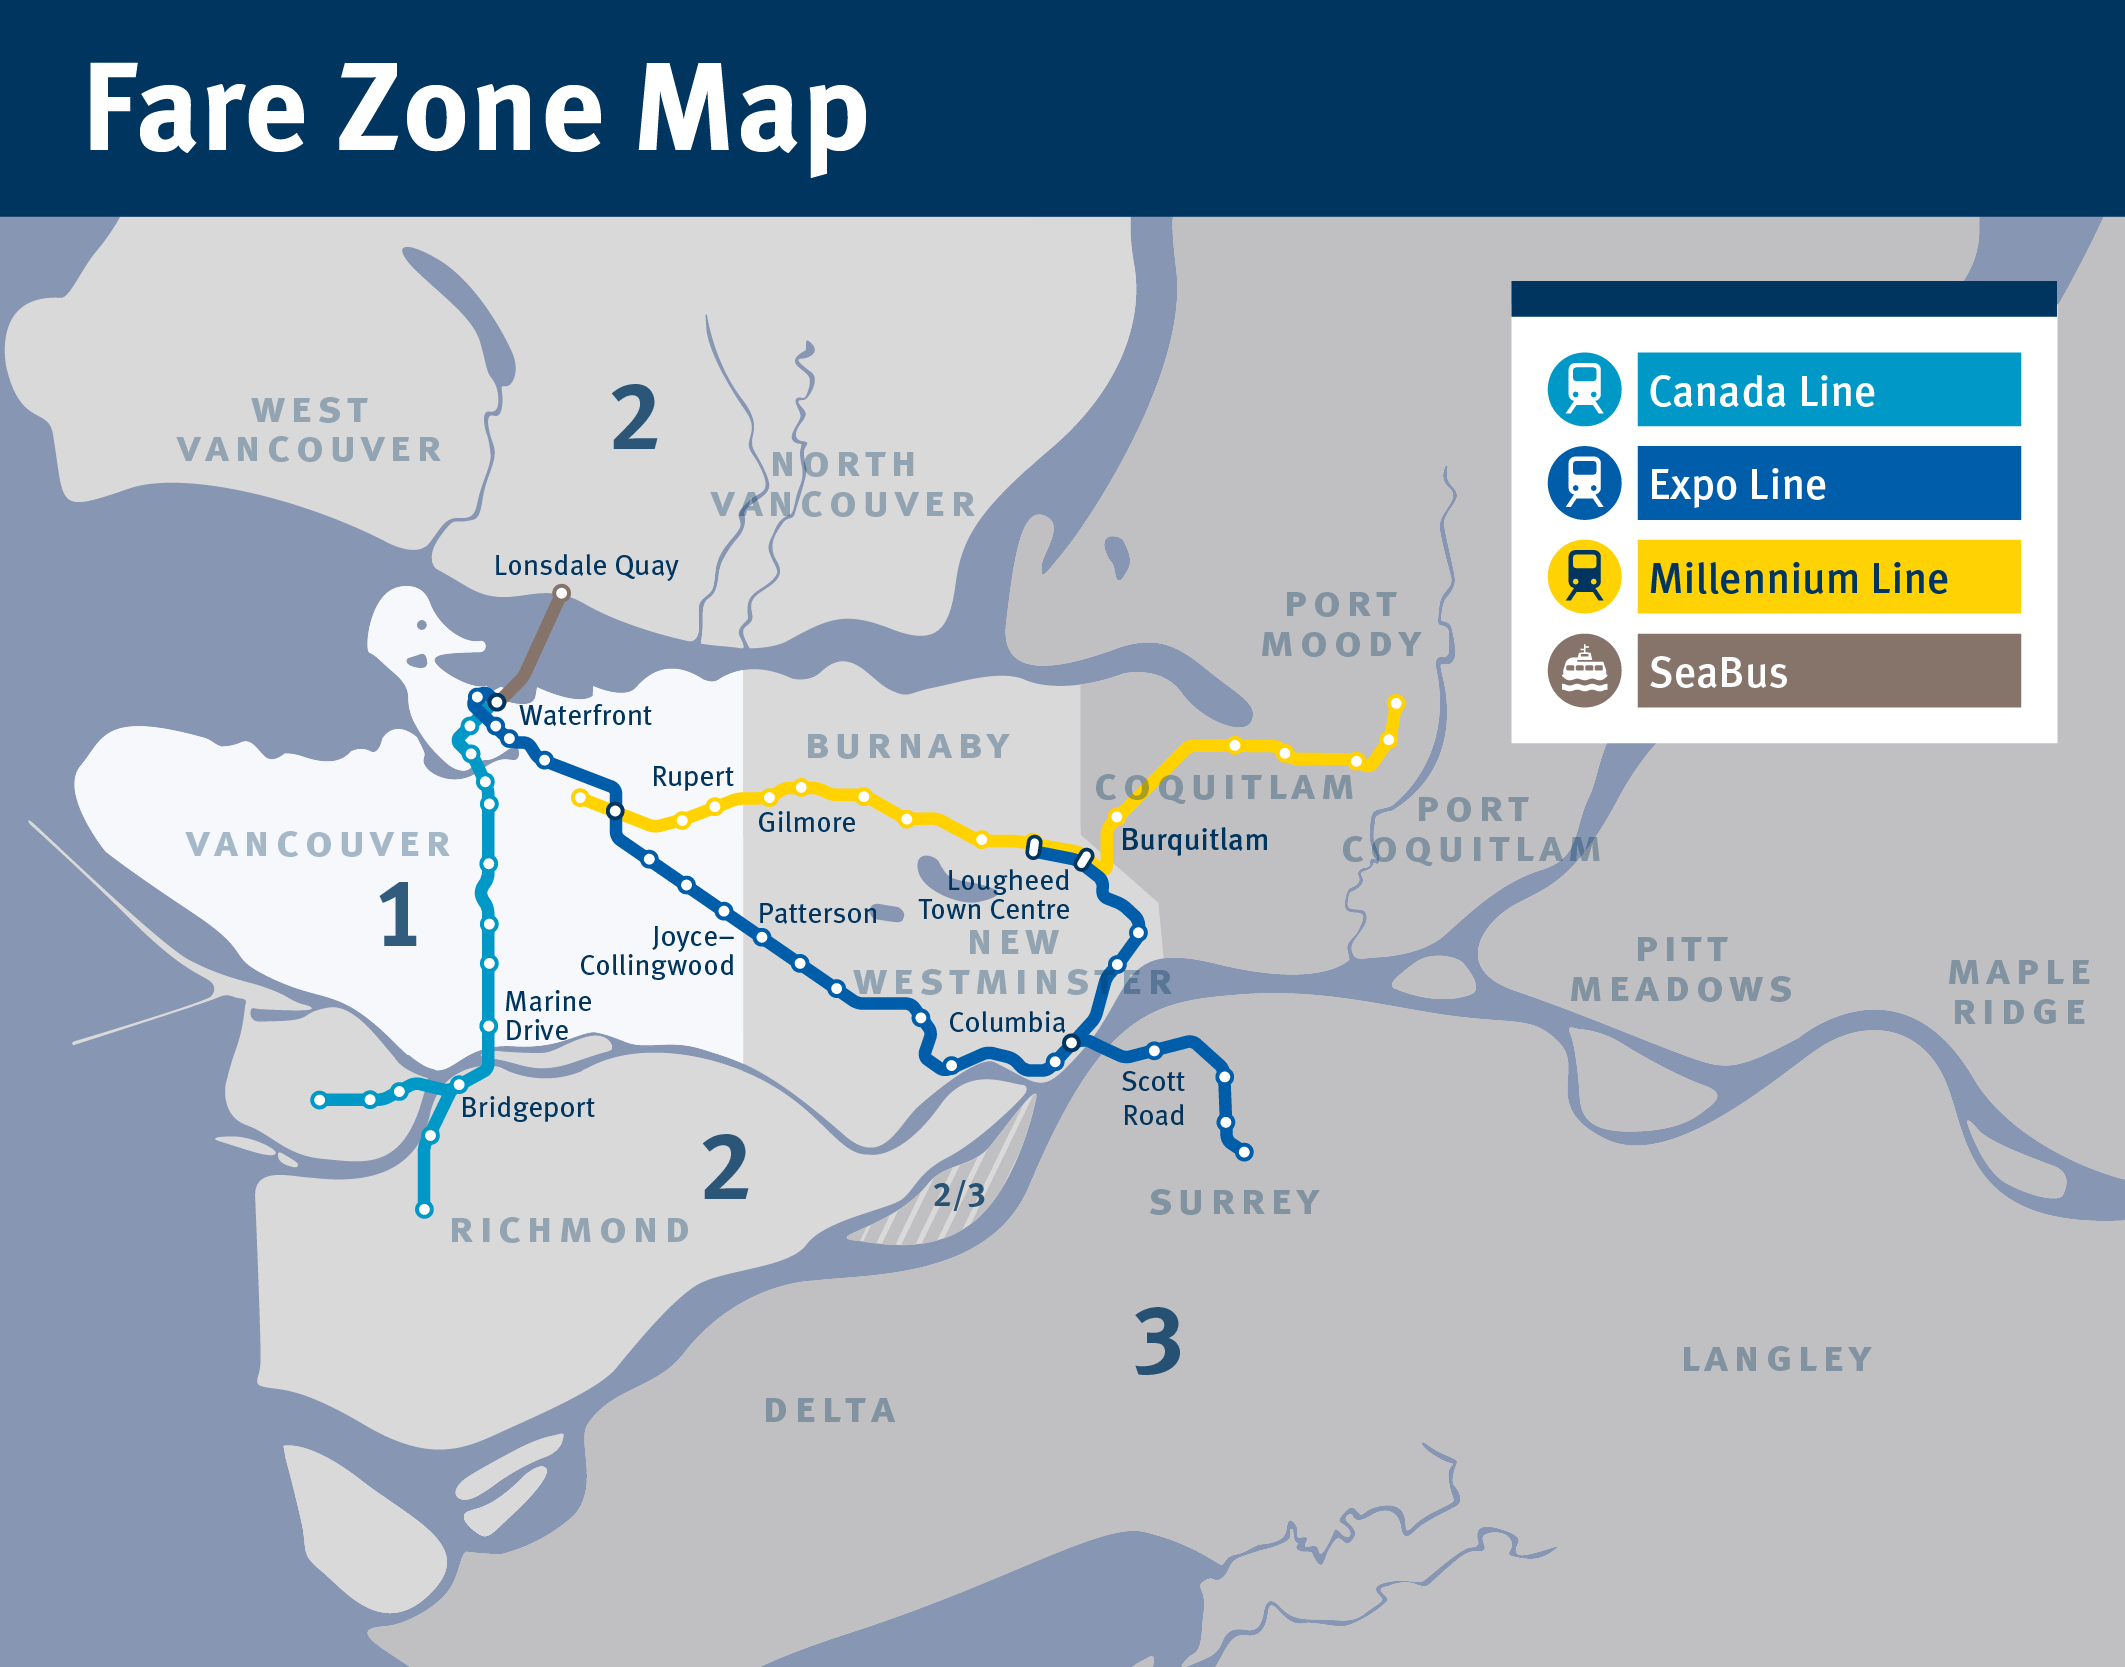 Canada Line Fare Zone Map Visiting Vancouver | TransLink